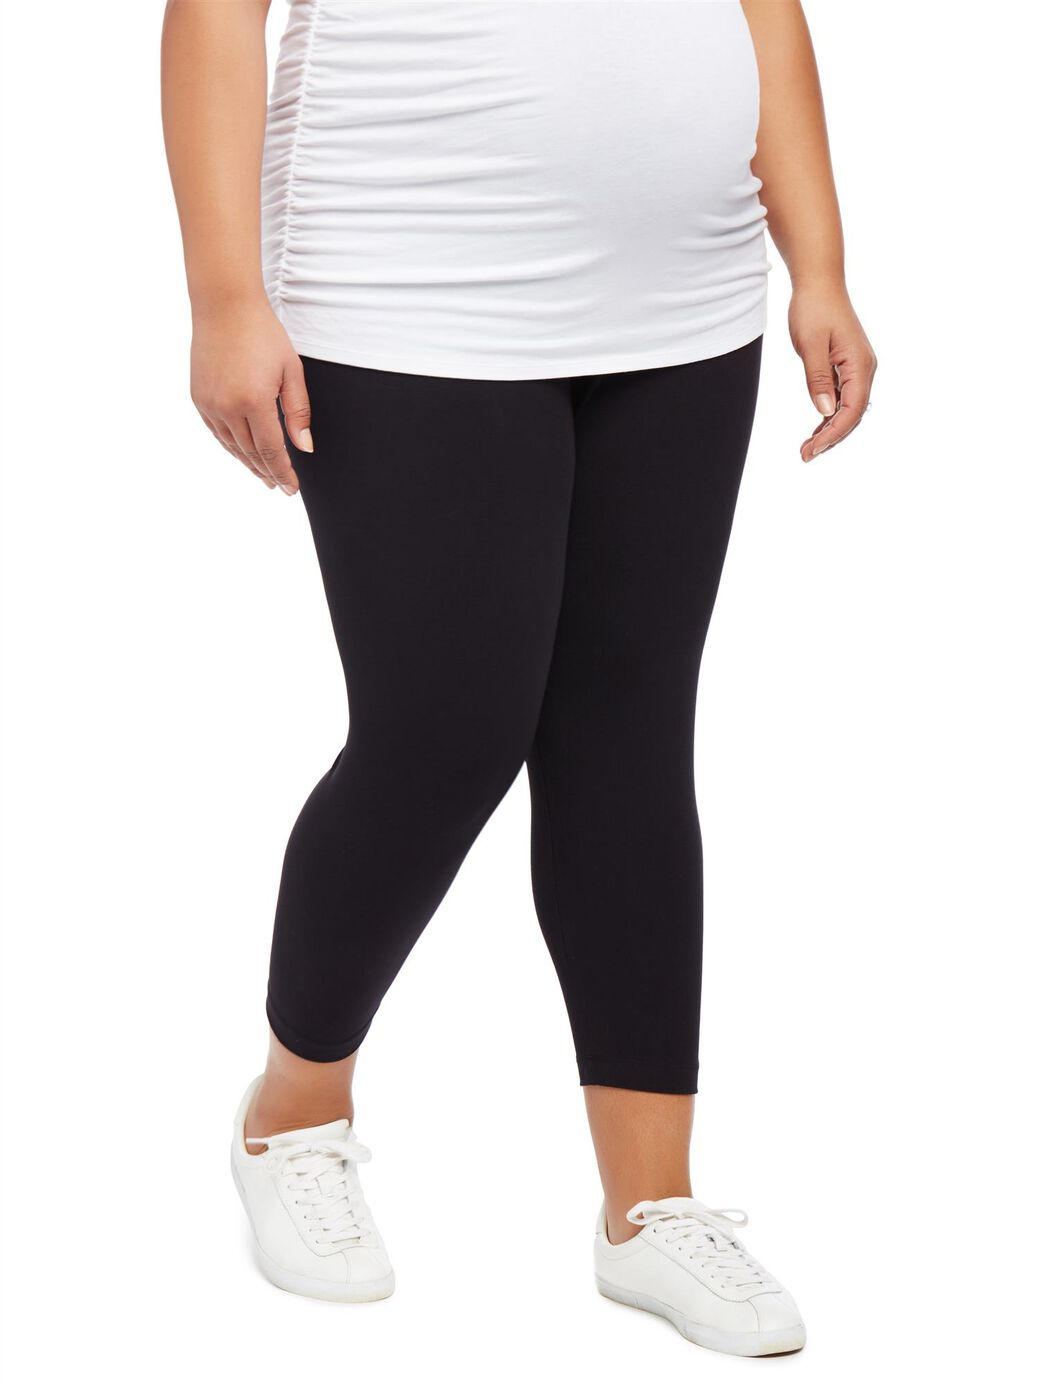 Plus Size Secret Fit Belly Maternity Crop Leggings at Motherhood Maternity in Victor, NY | Tuggl